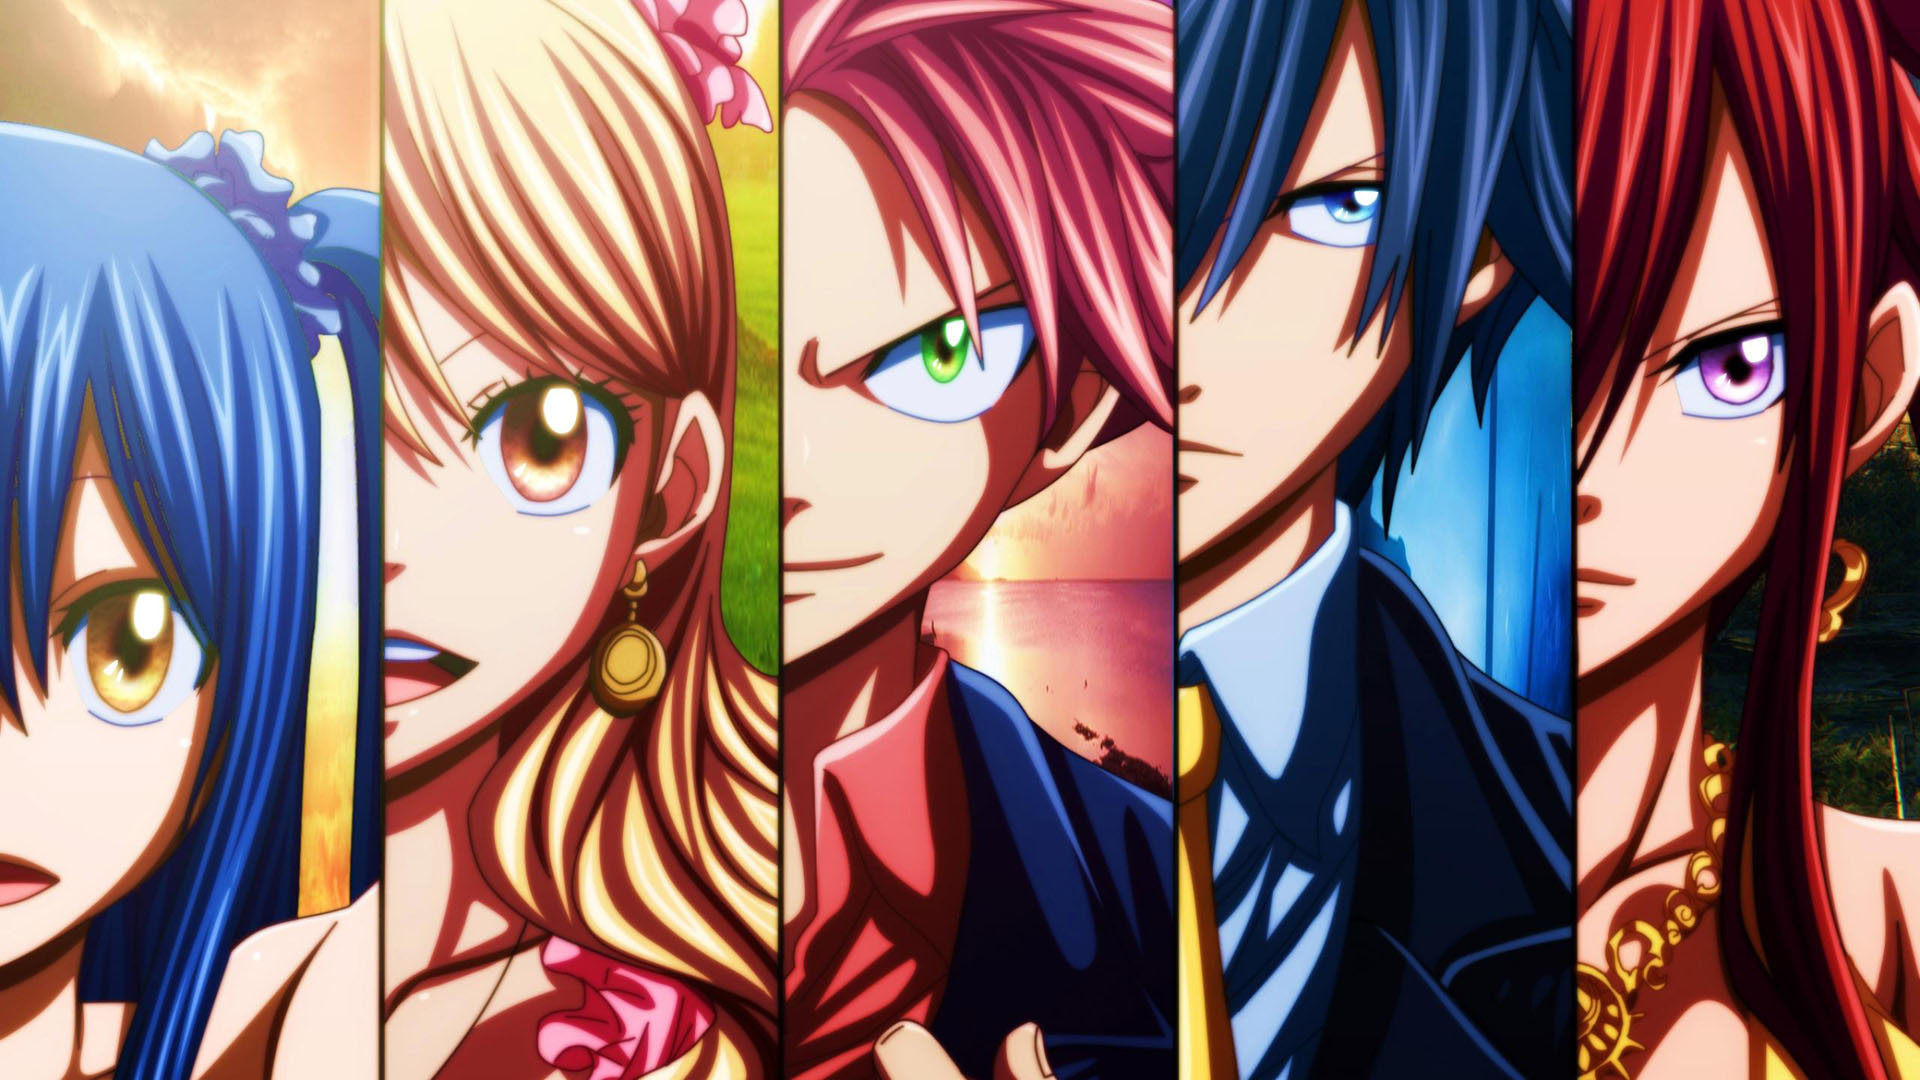 Pics Photos   Wallpaper Fairy Tail Hd Wallpaper Widescreen 1920x1080